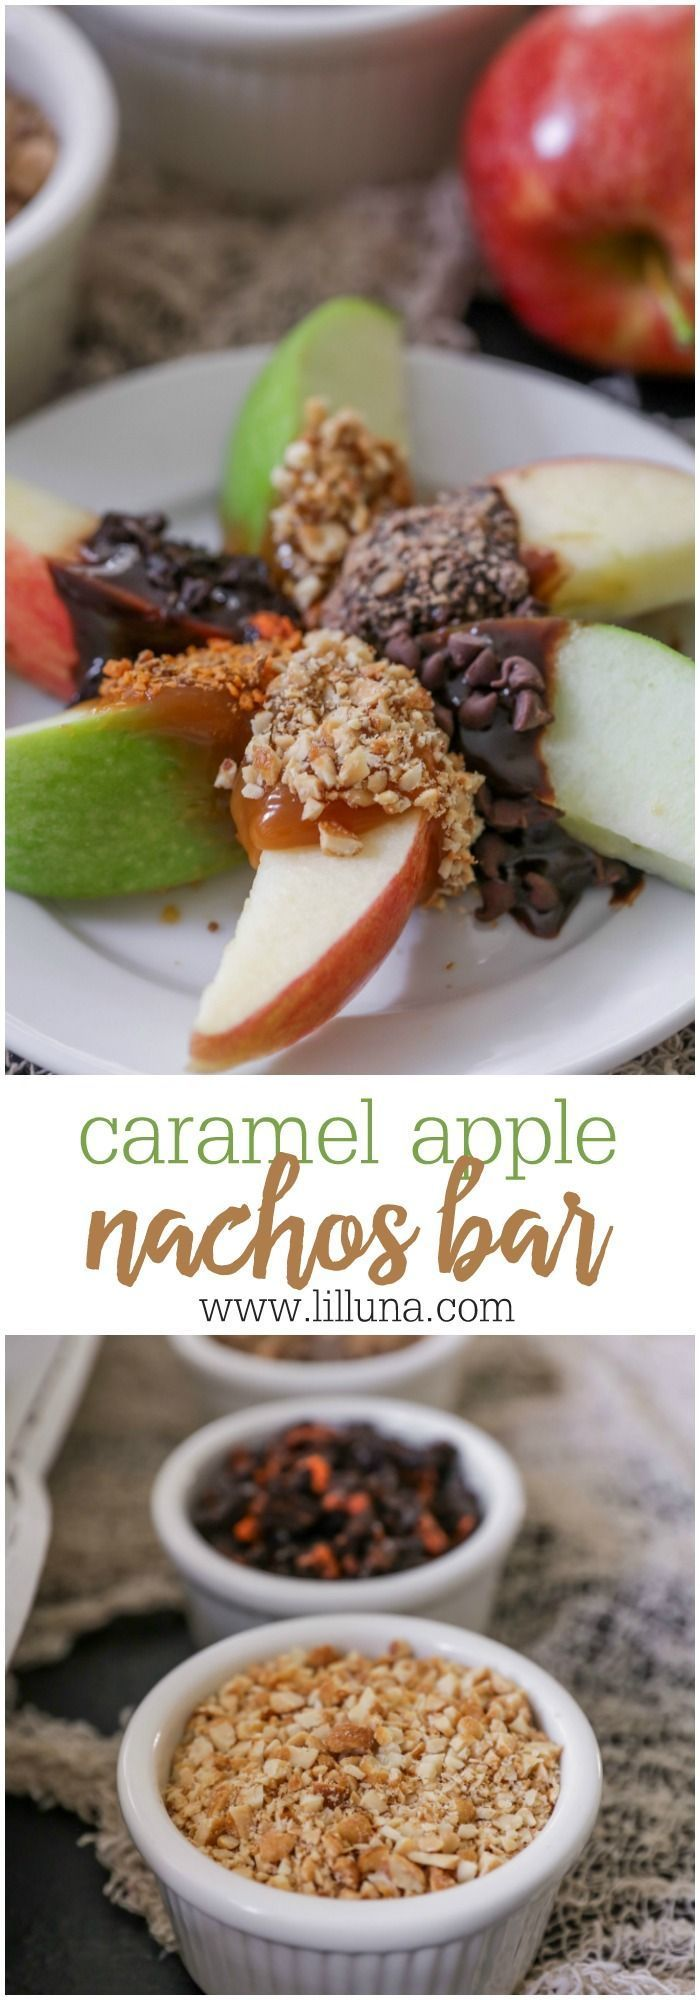 Caramel Apple Nachos bar - apple slices with chocolate and caramel dip with a variety of toppings.